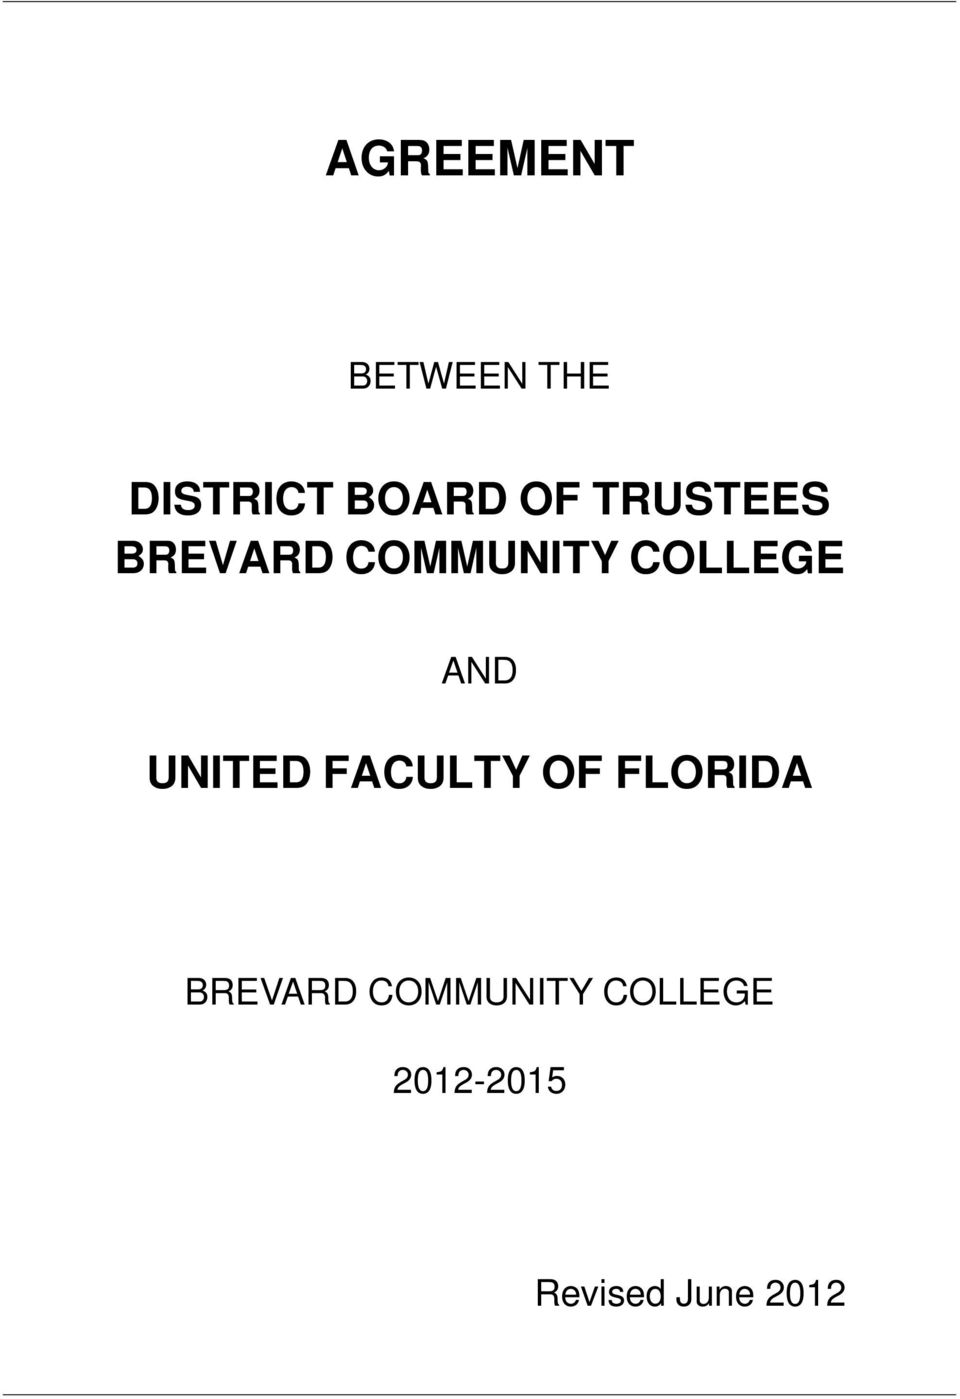 UNITED FACULTY OF FLORIDA BREVARD